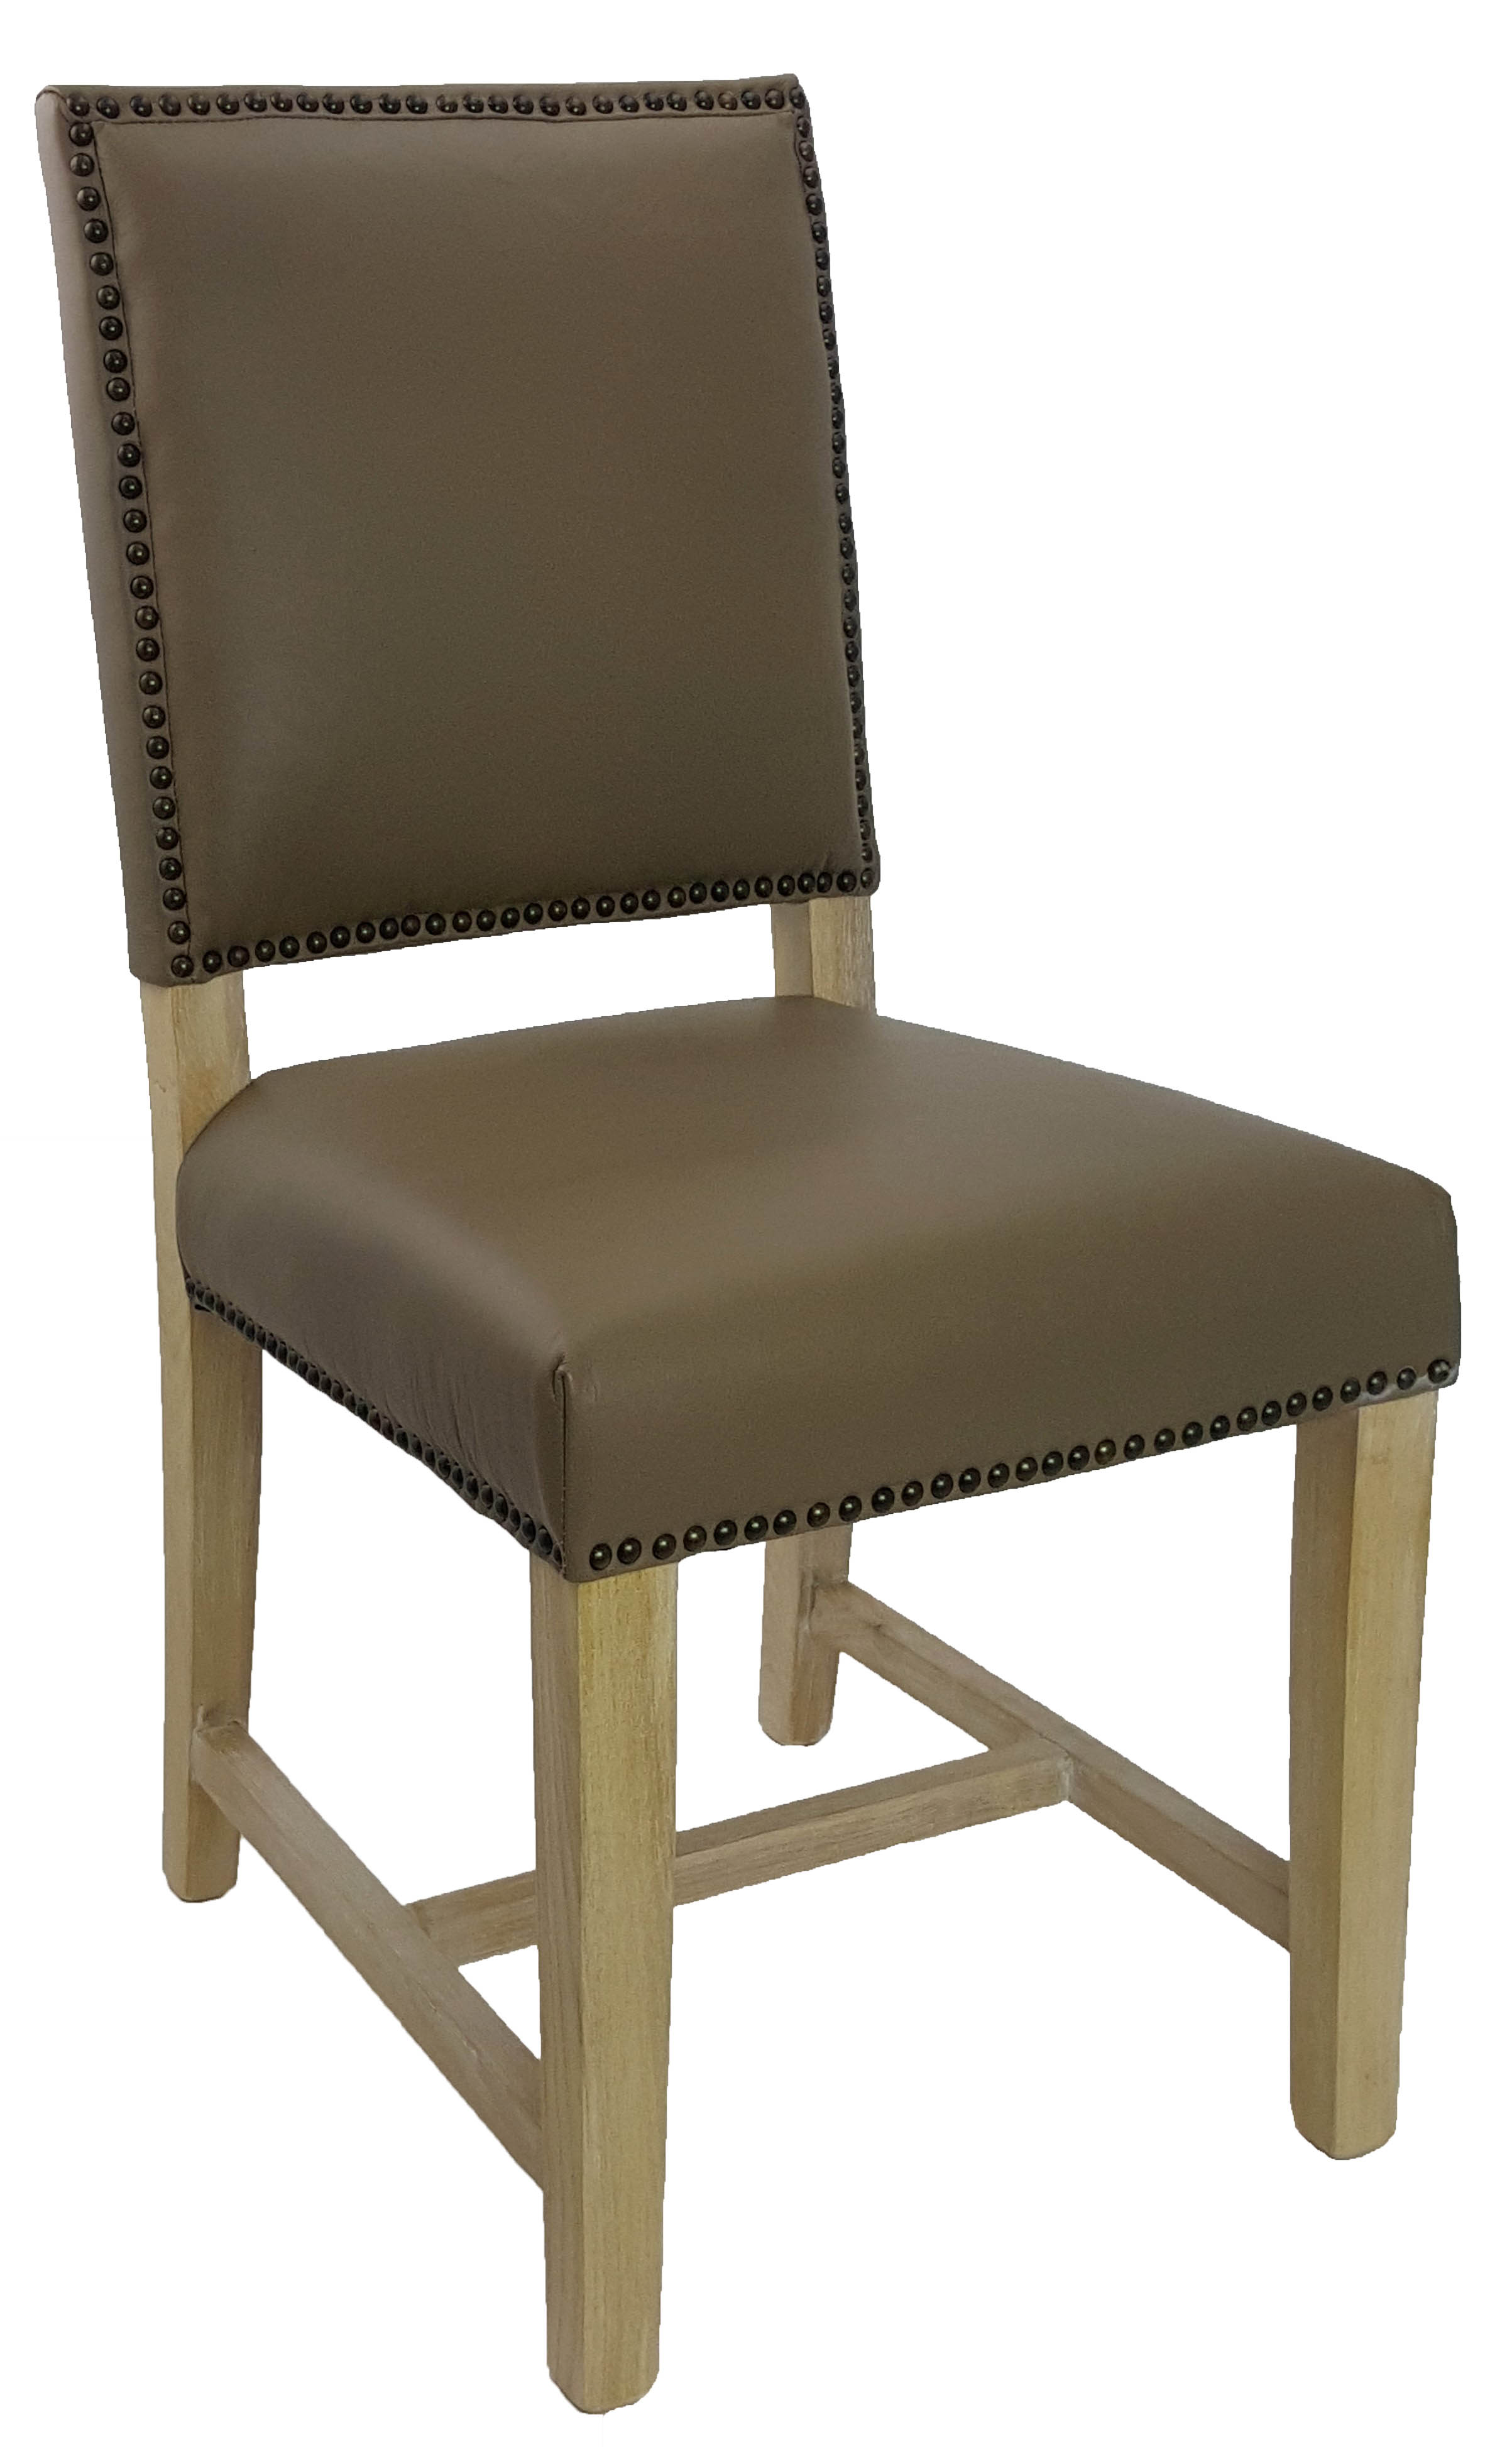 Chairs Dining Chairs Bonded Leather Dining Chair